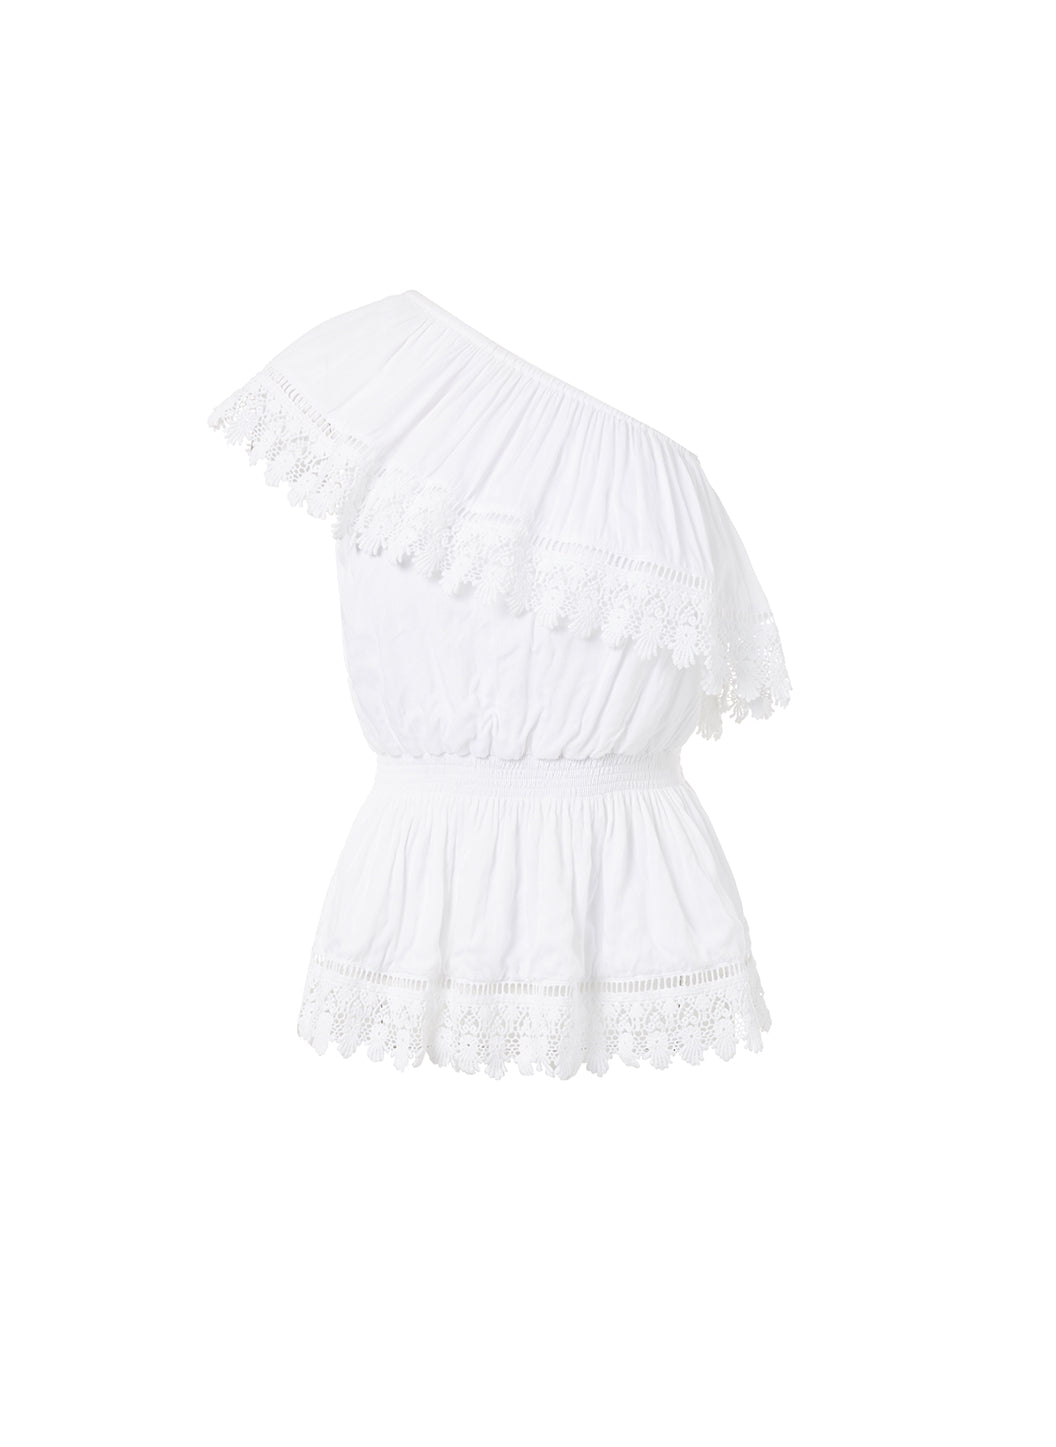 Joanna White One Shoulder Embroidered Frill Top - Melissa Odabash Tops & Bottoms